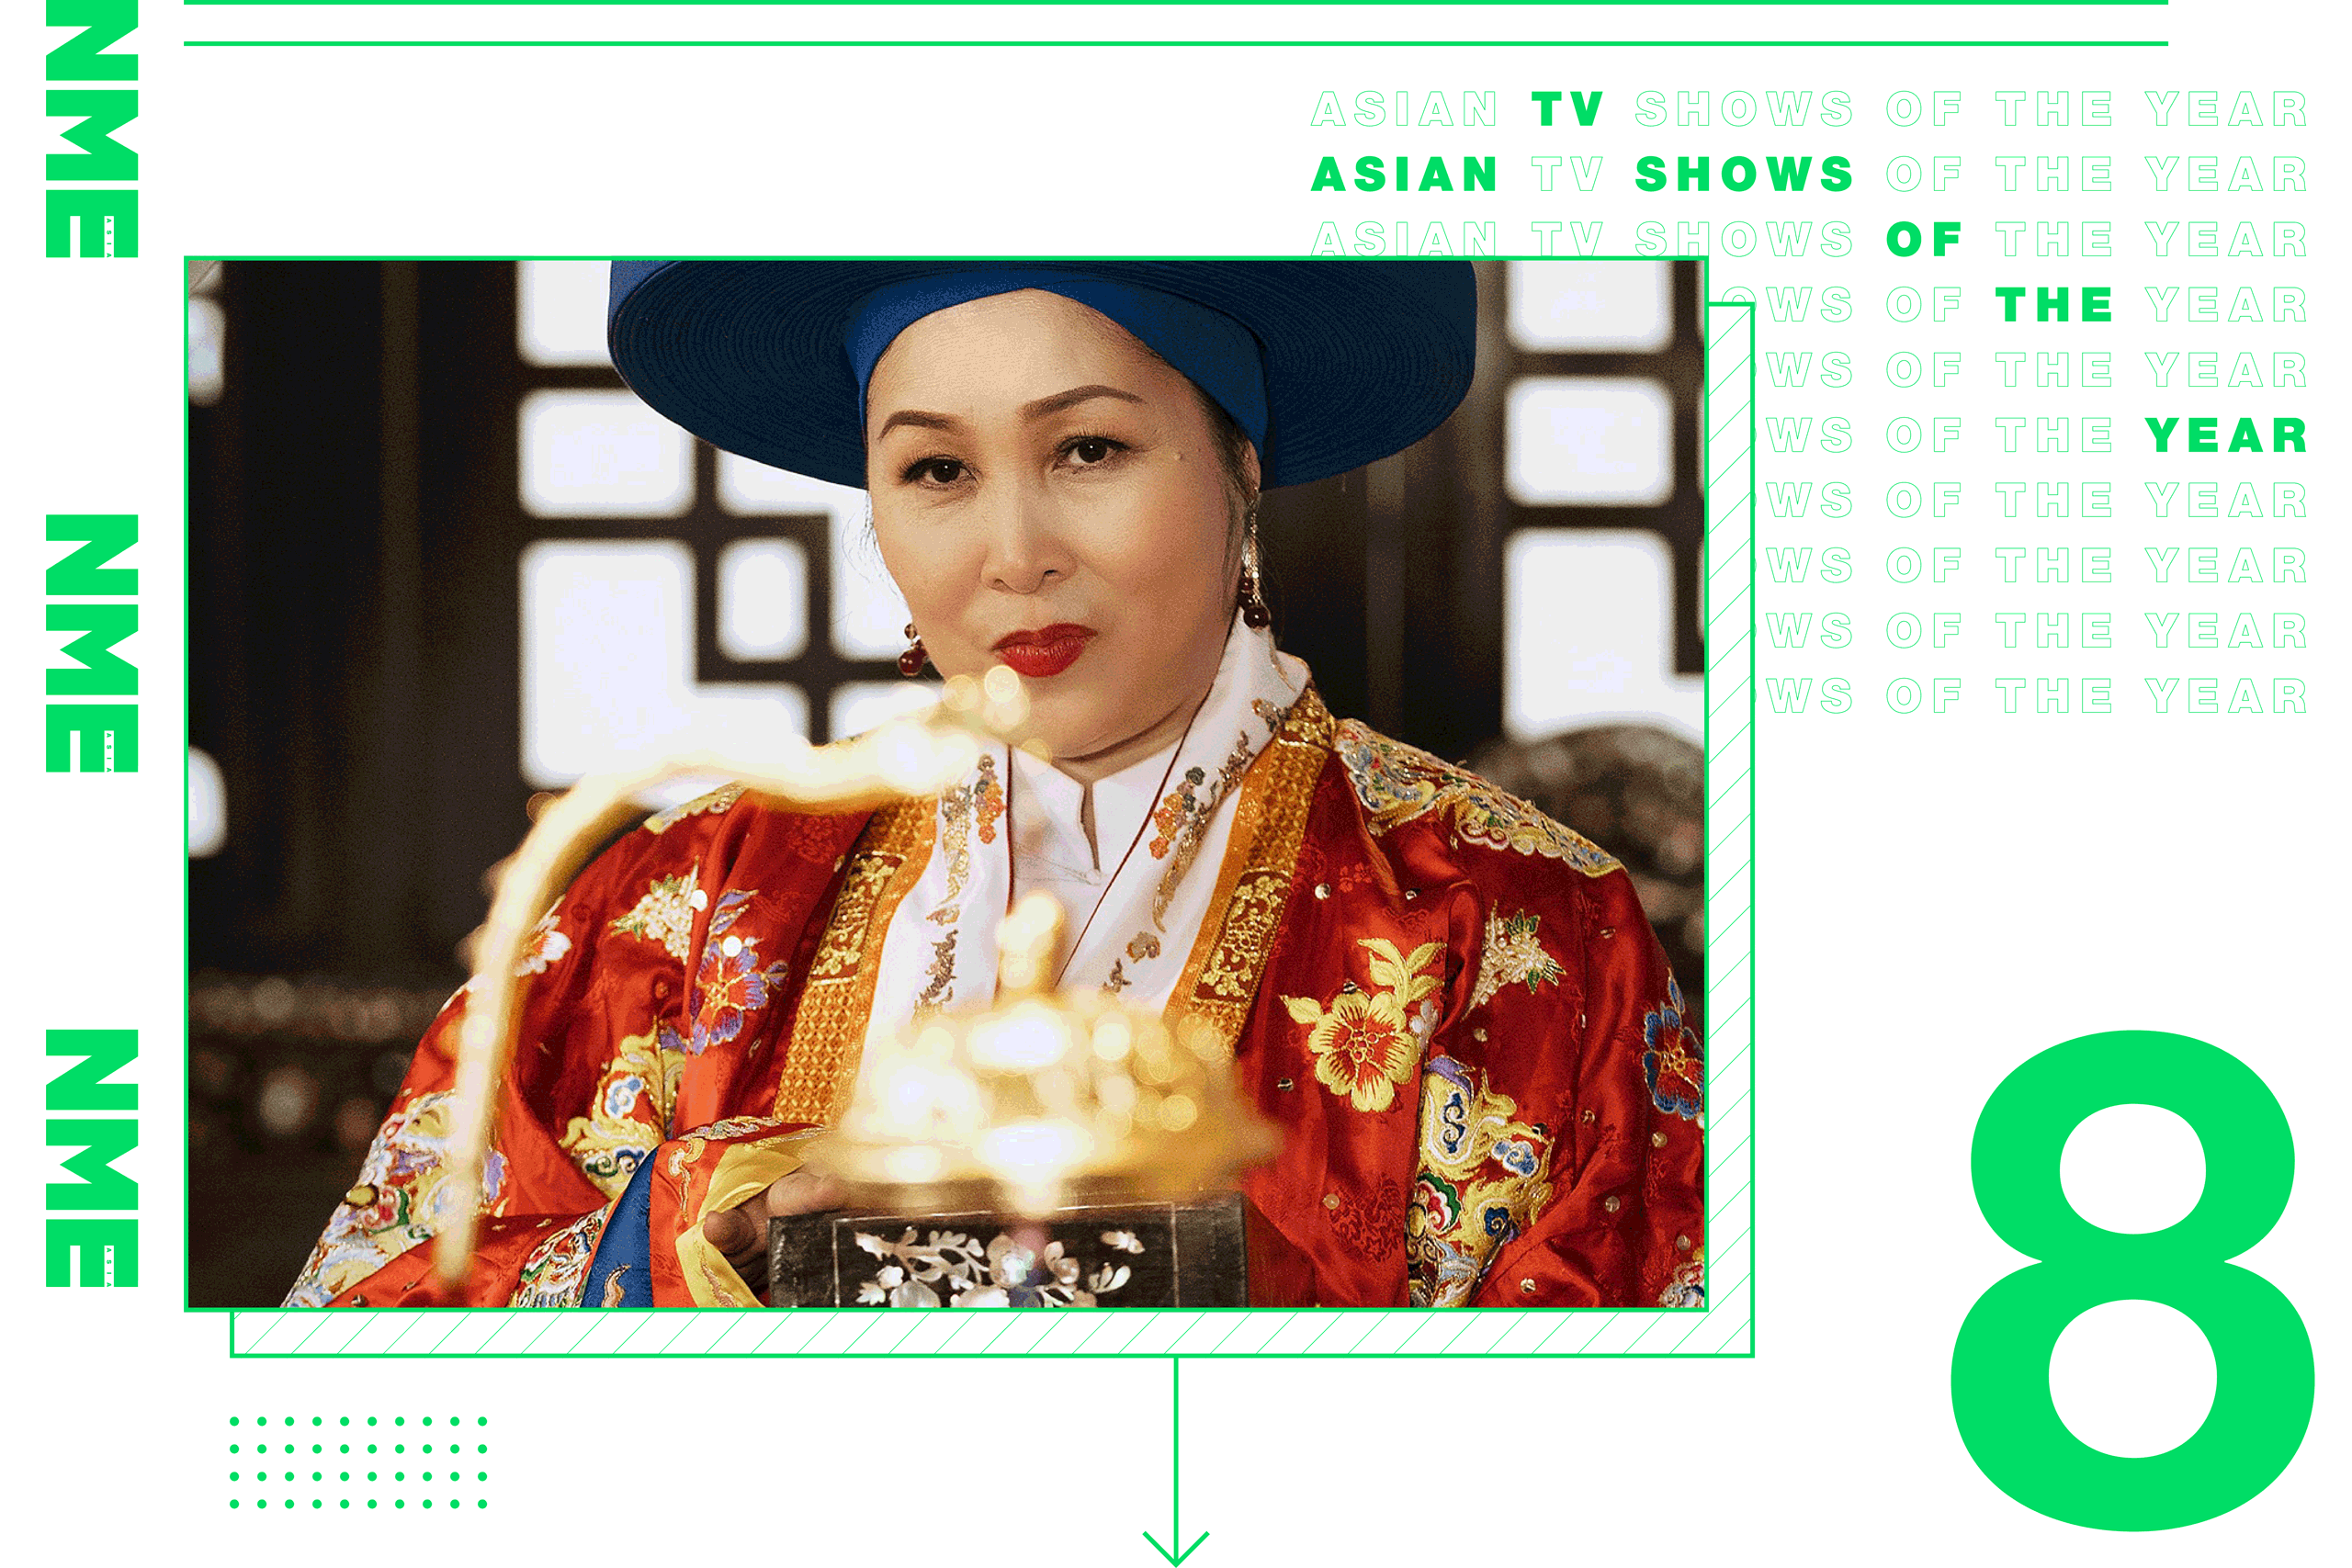 NME Asian TV Shows Of The Year Emperor's Gift